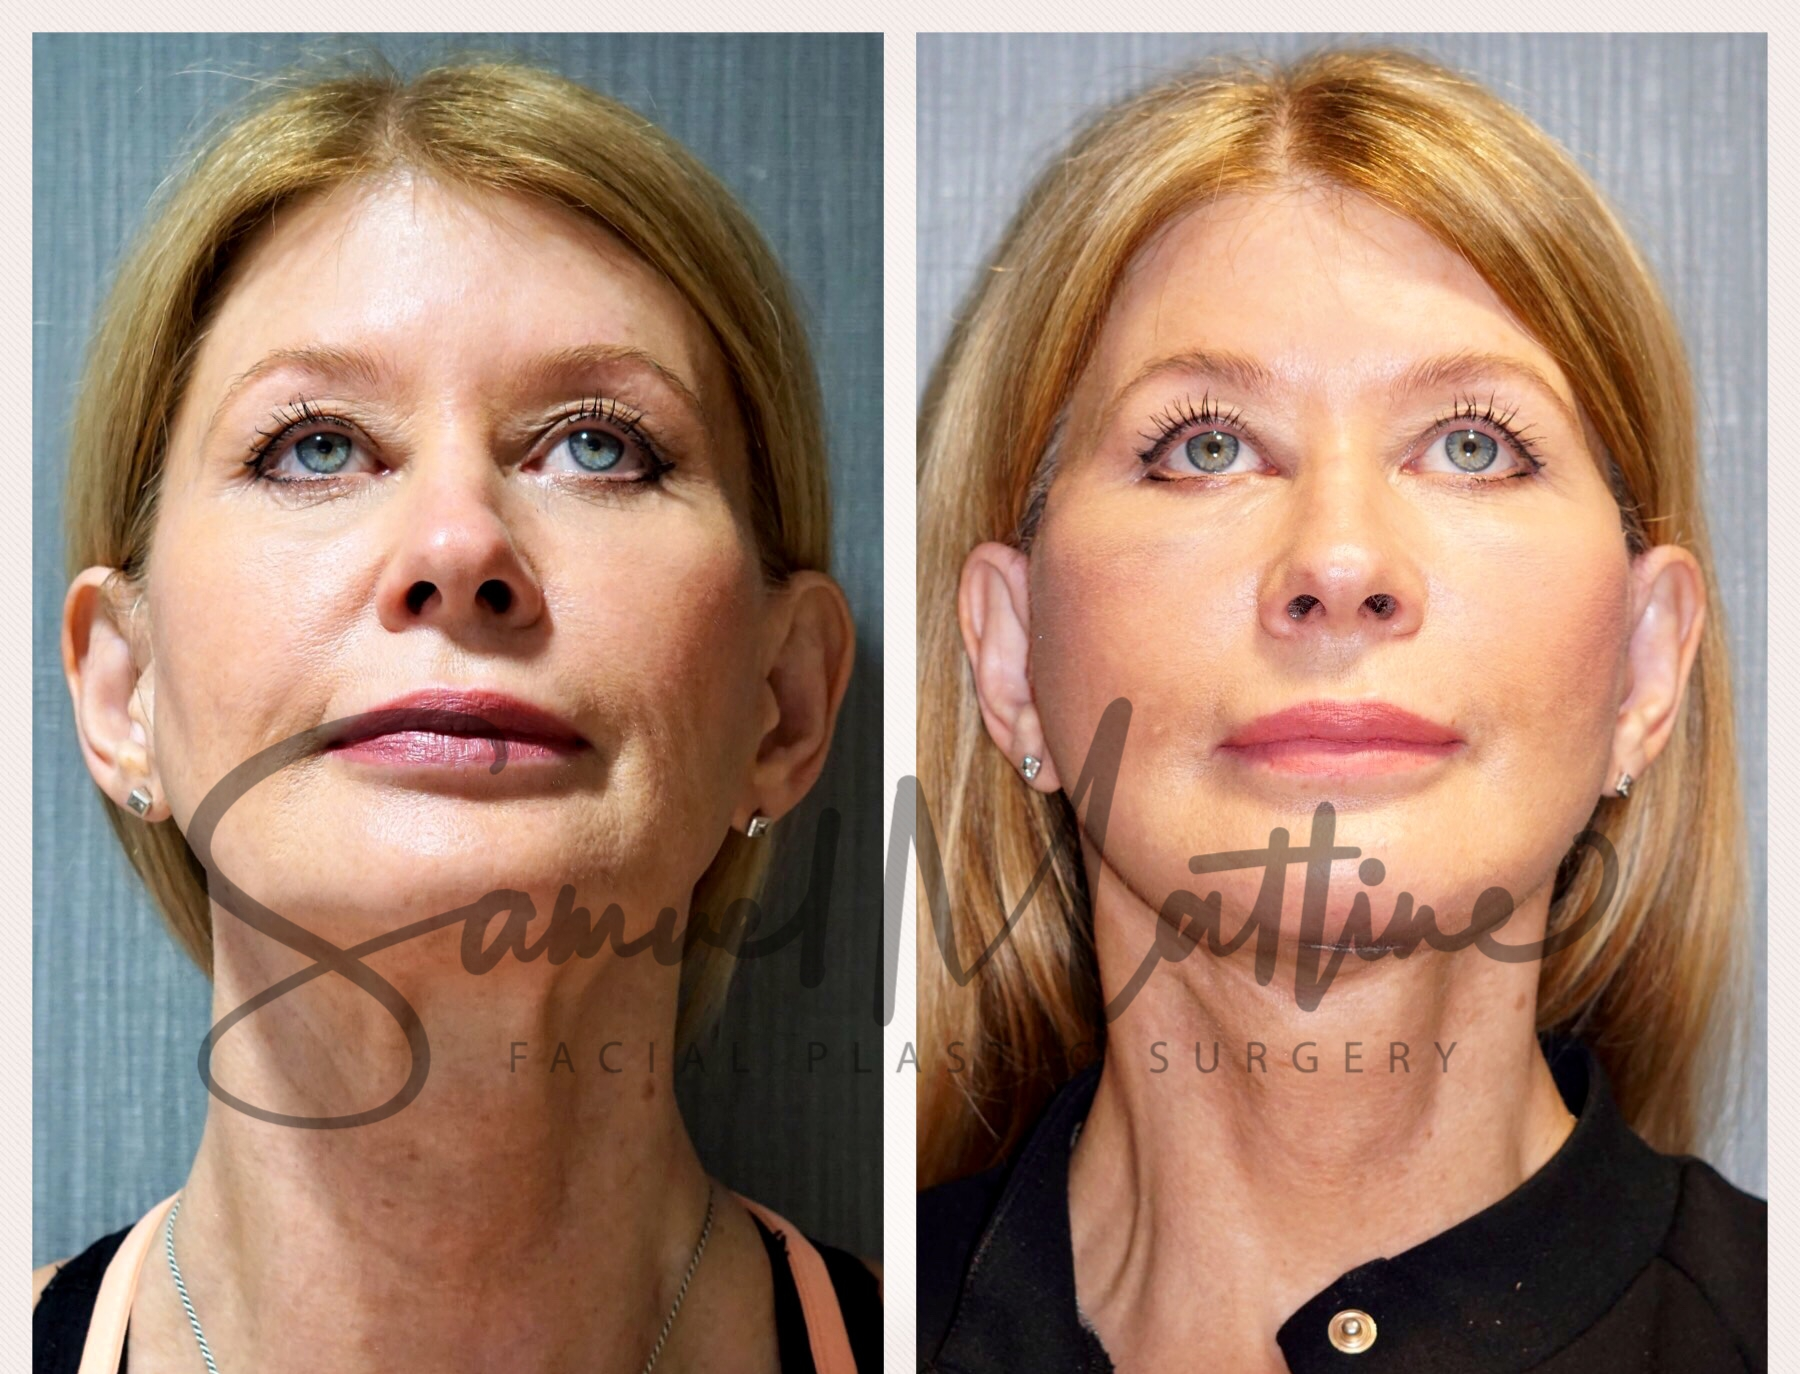 Before and After Face Lift